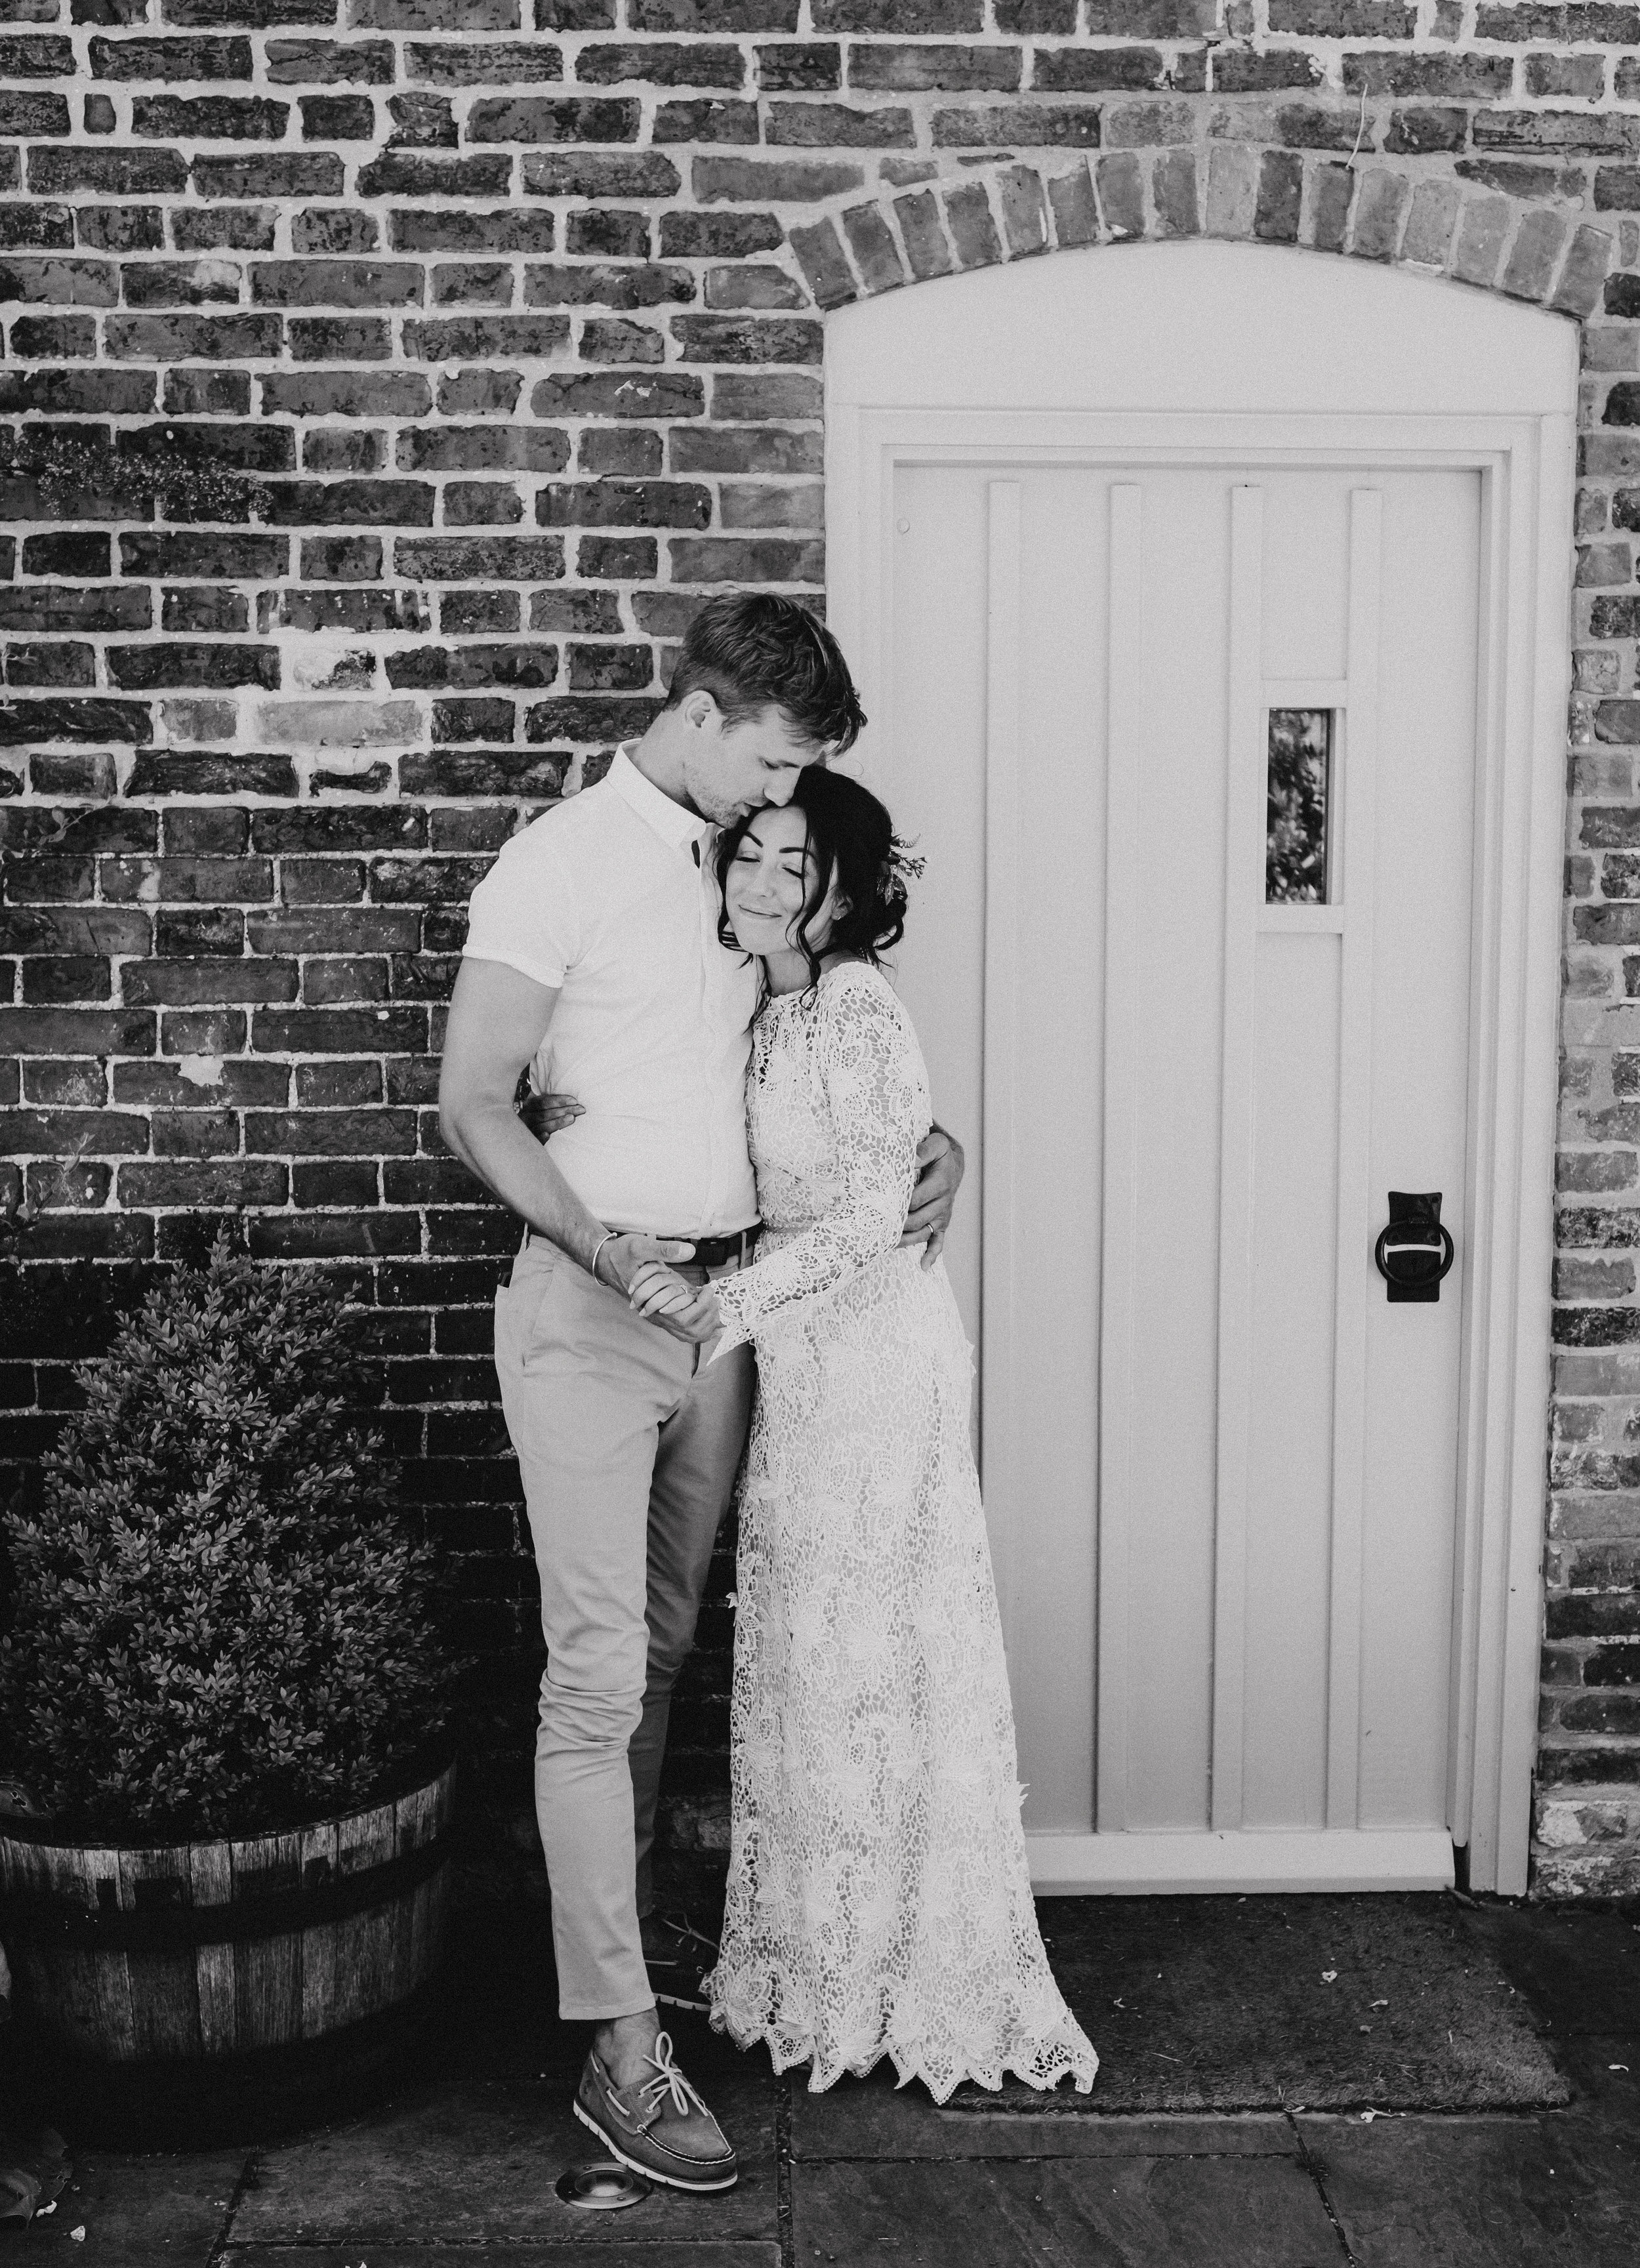 Groom kissing bride on the head | Black and white photograph